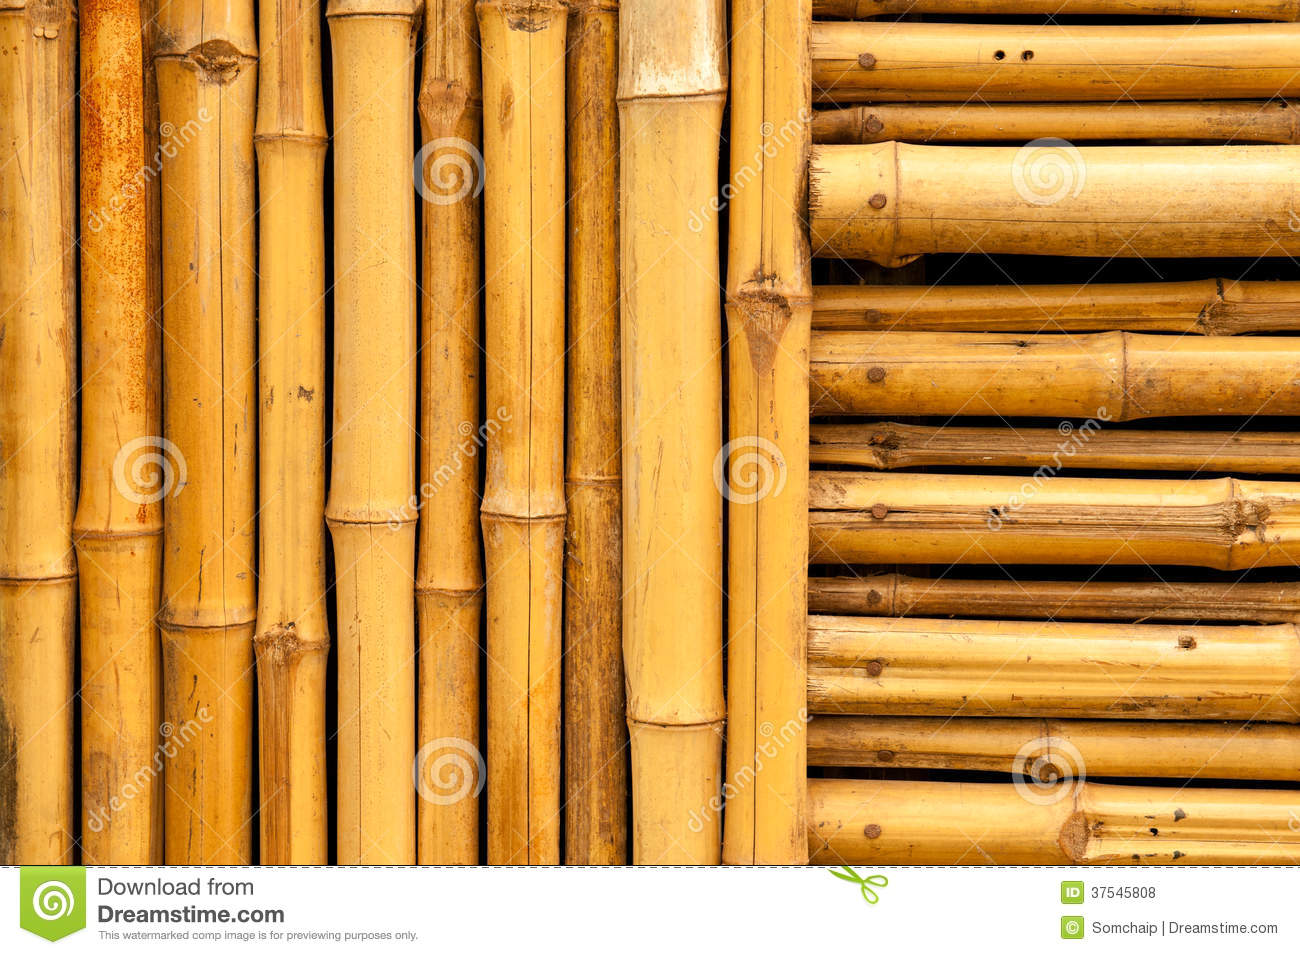 Bamboo wall stock photo. Image of pipes, desk, frame - 37545808